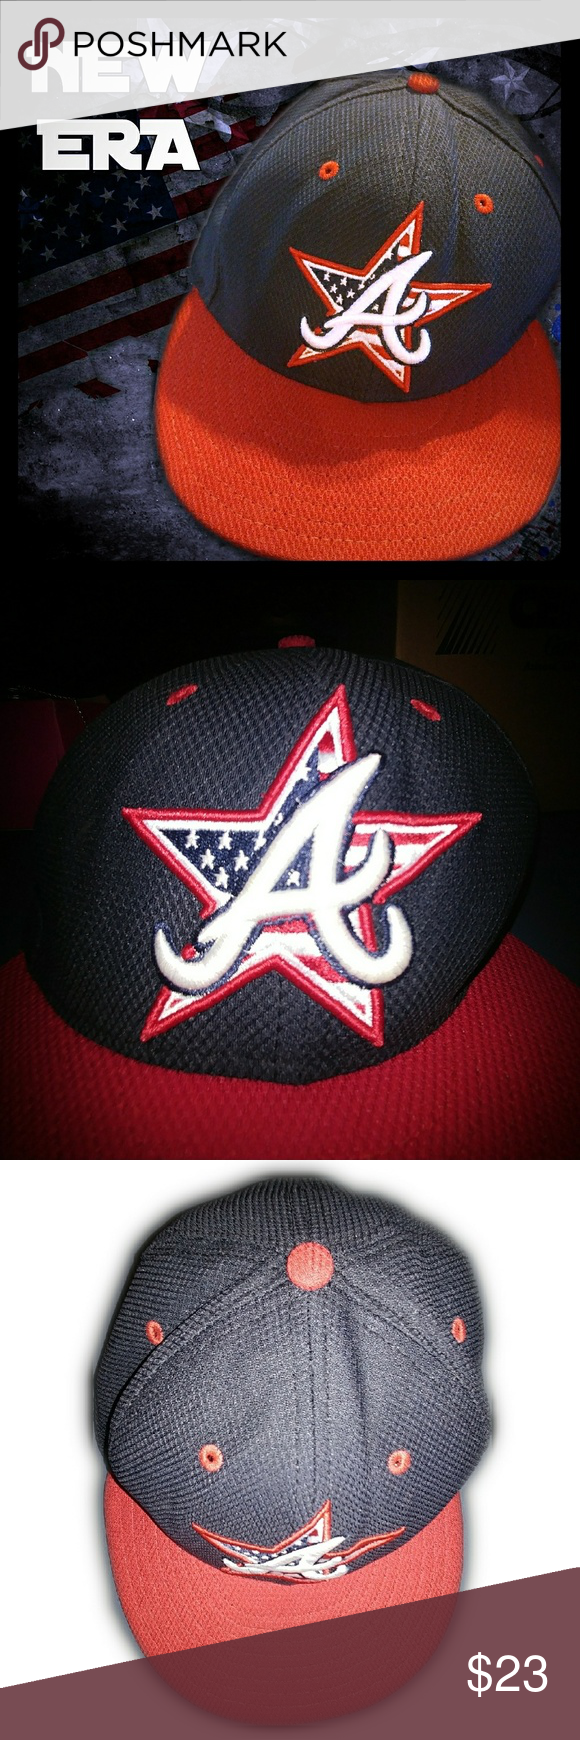 New Era Mlb 59fifty Atlanta Braves Fitted Hat Excellent Pre Owned Condition Fitted Size 7 1 4 57 7 Cm Rare American Fla Fitted Hats New Era New Era 59fifty